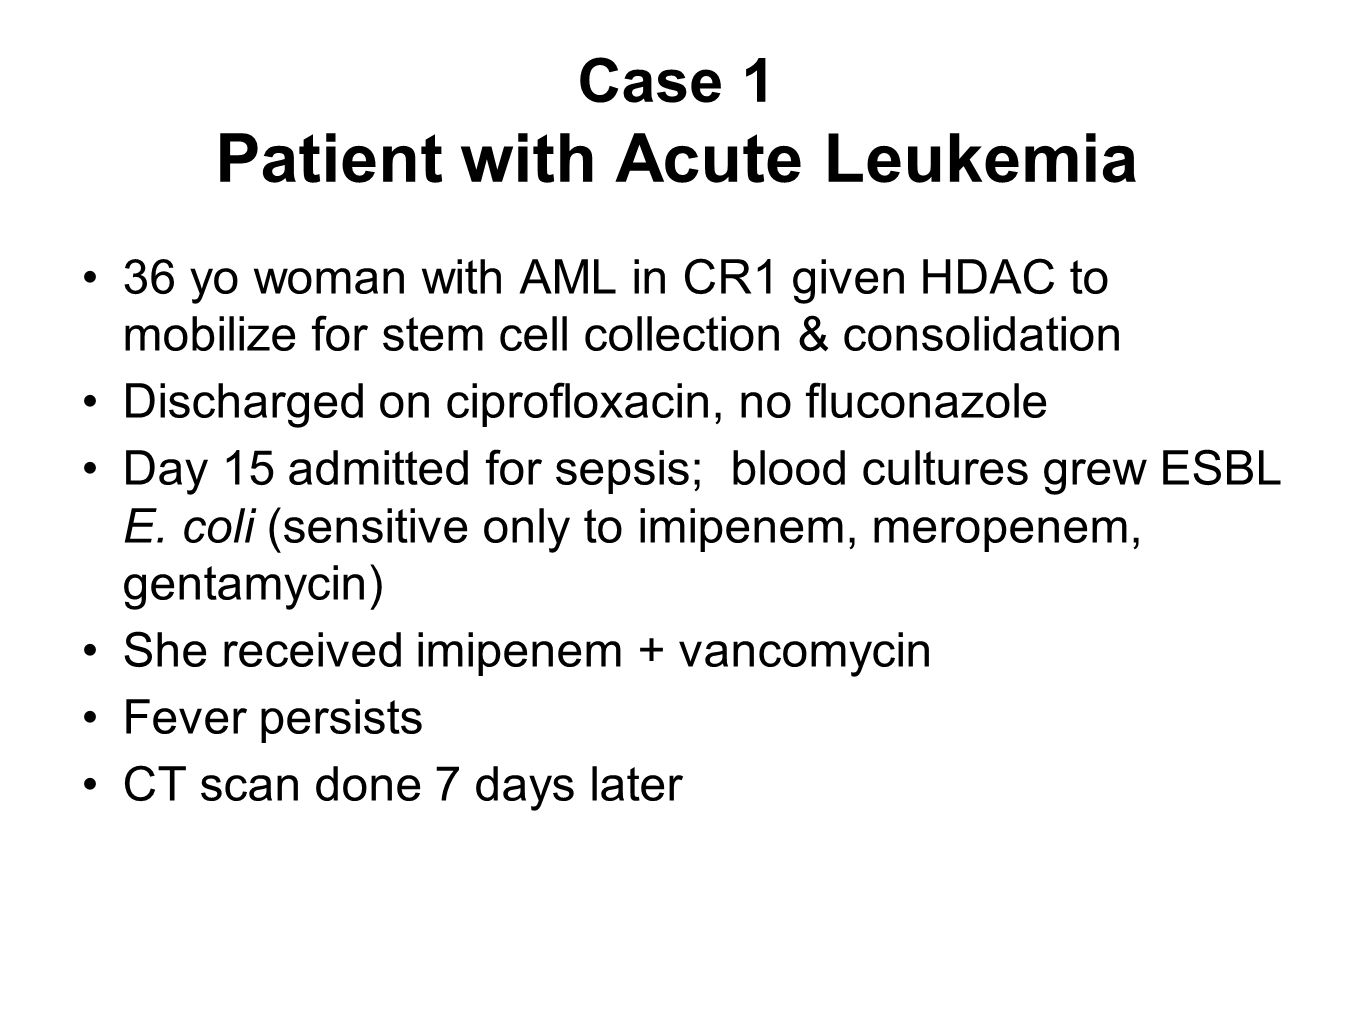 Case 1 Patient with Acute Leukemia